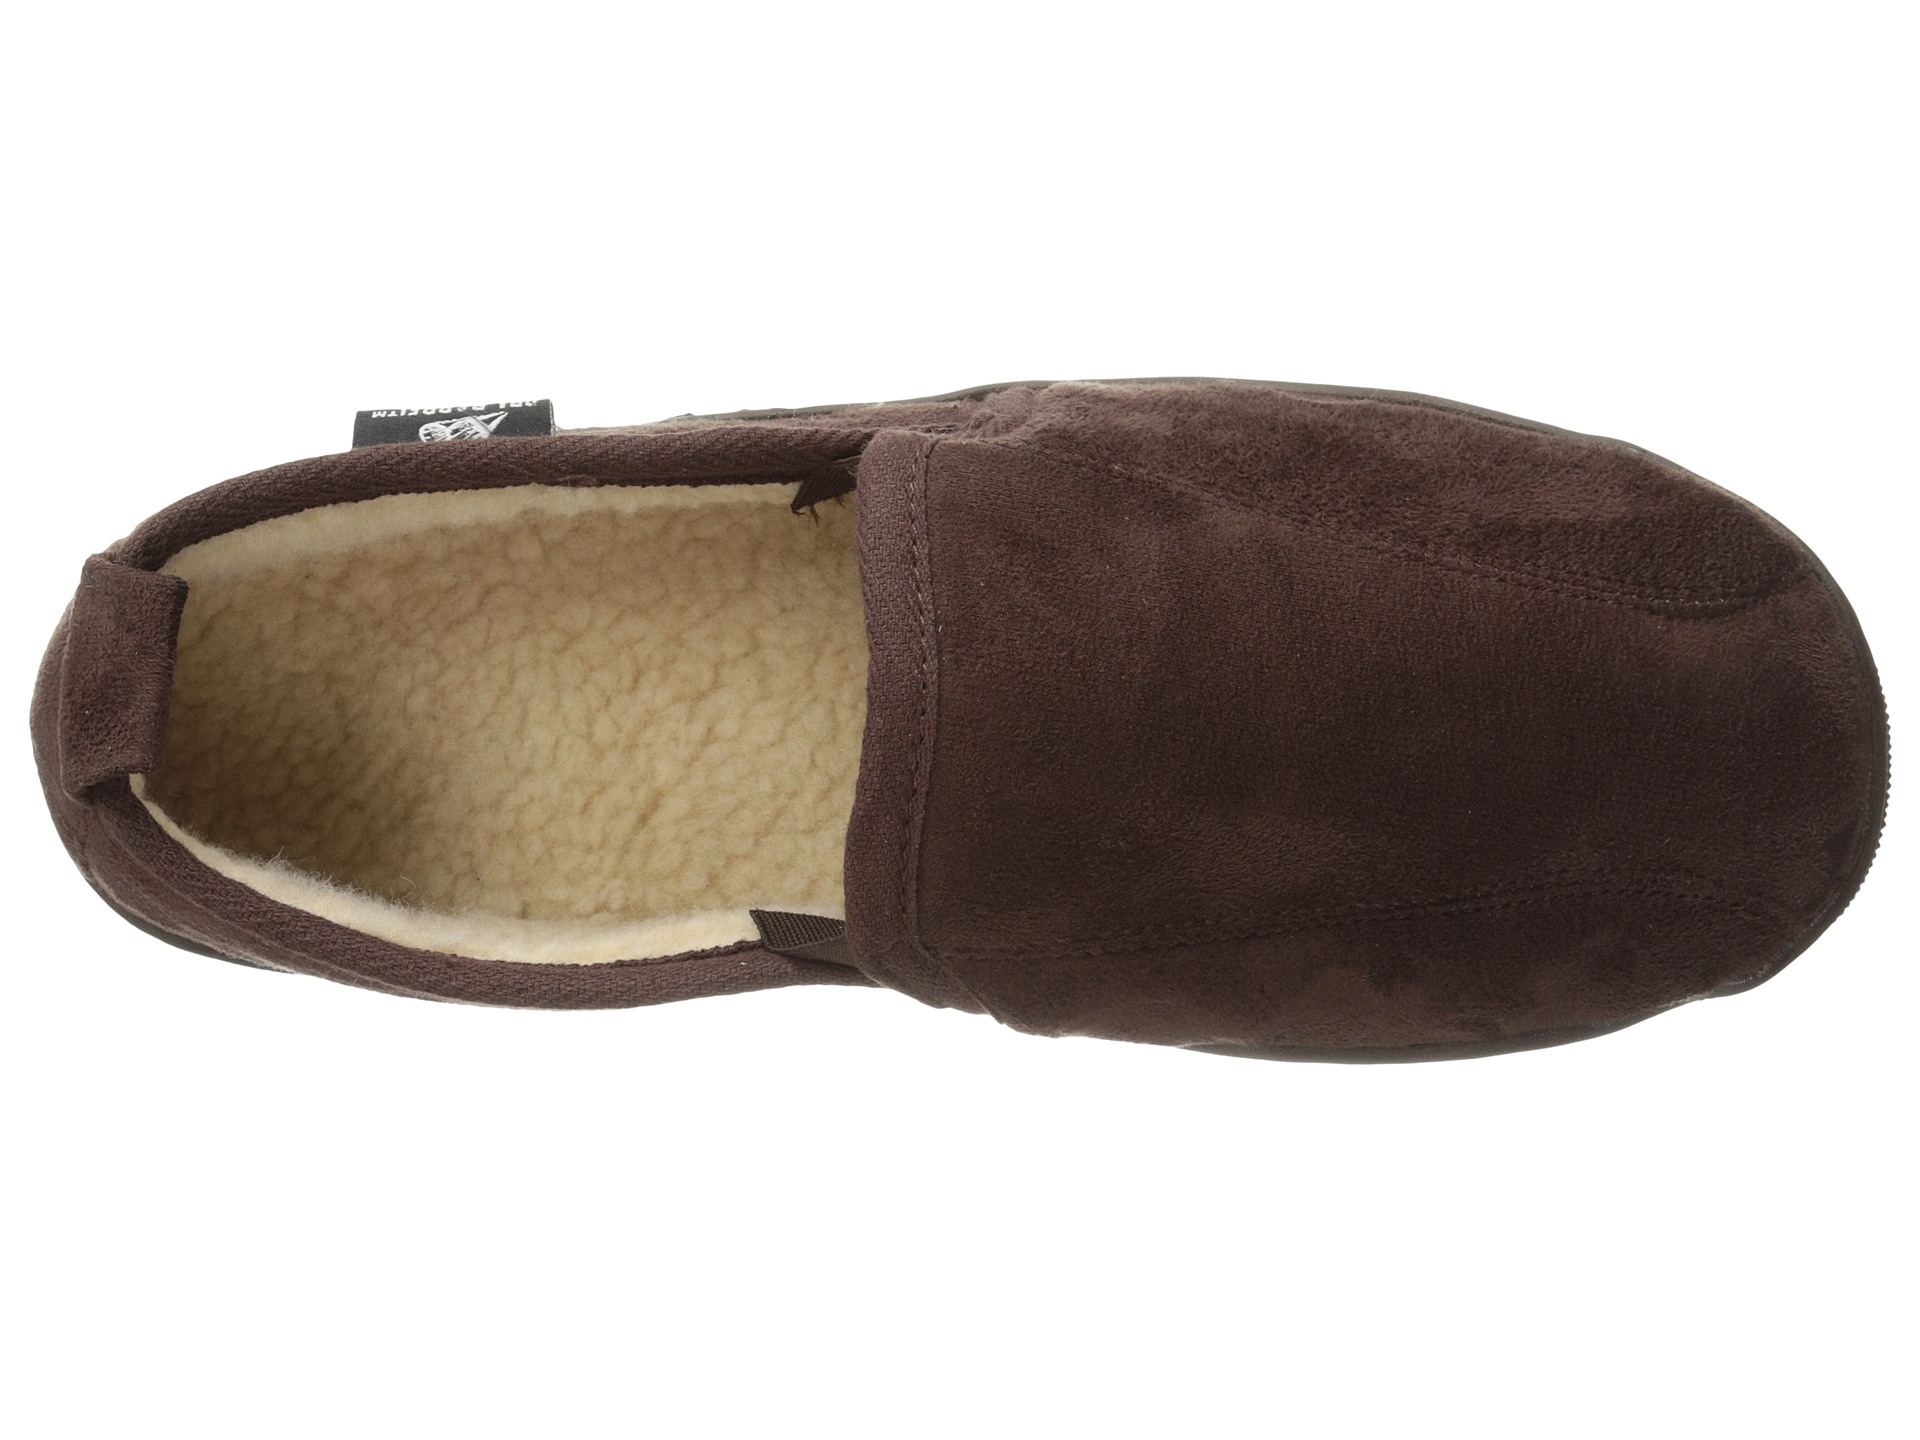 Winter Memory Foam Slippers Moccasin